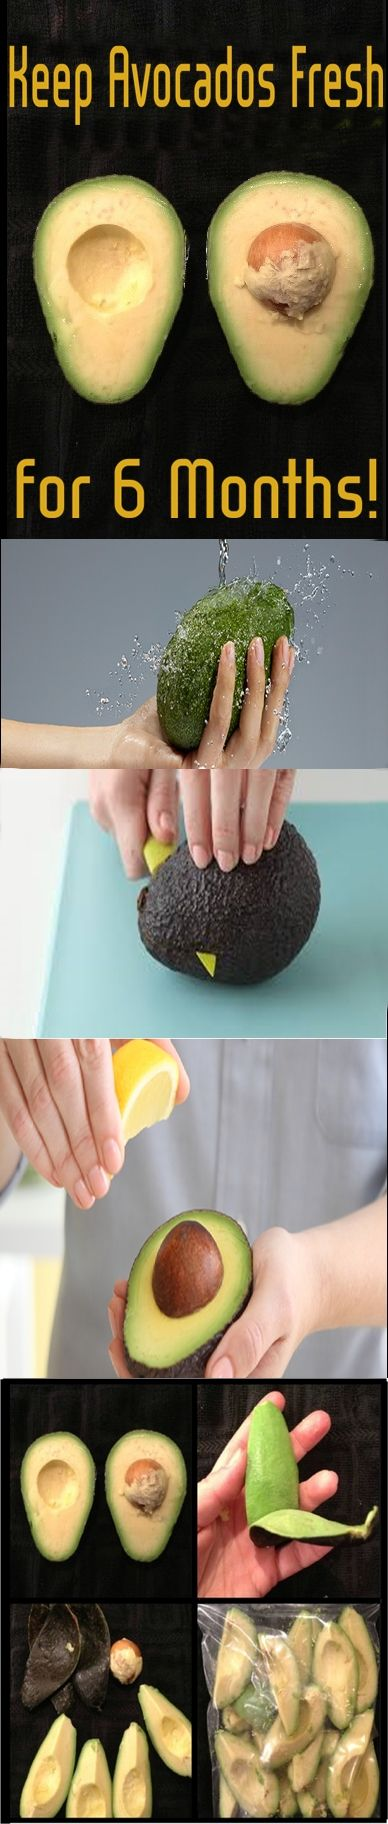 Avocados not only have fantastic taste, but they are also rich in a variety of minerals and vitamins that can